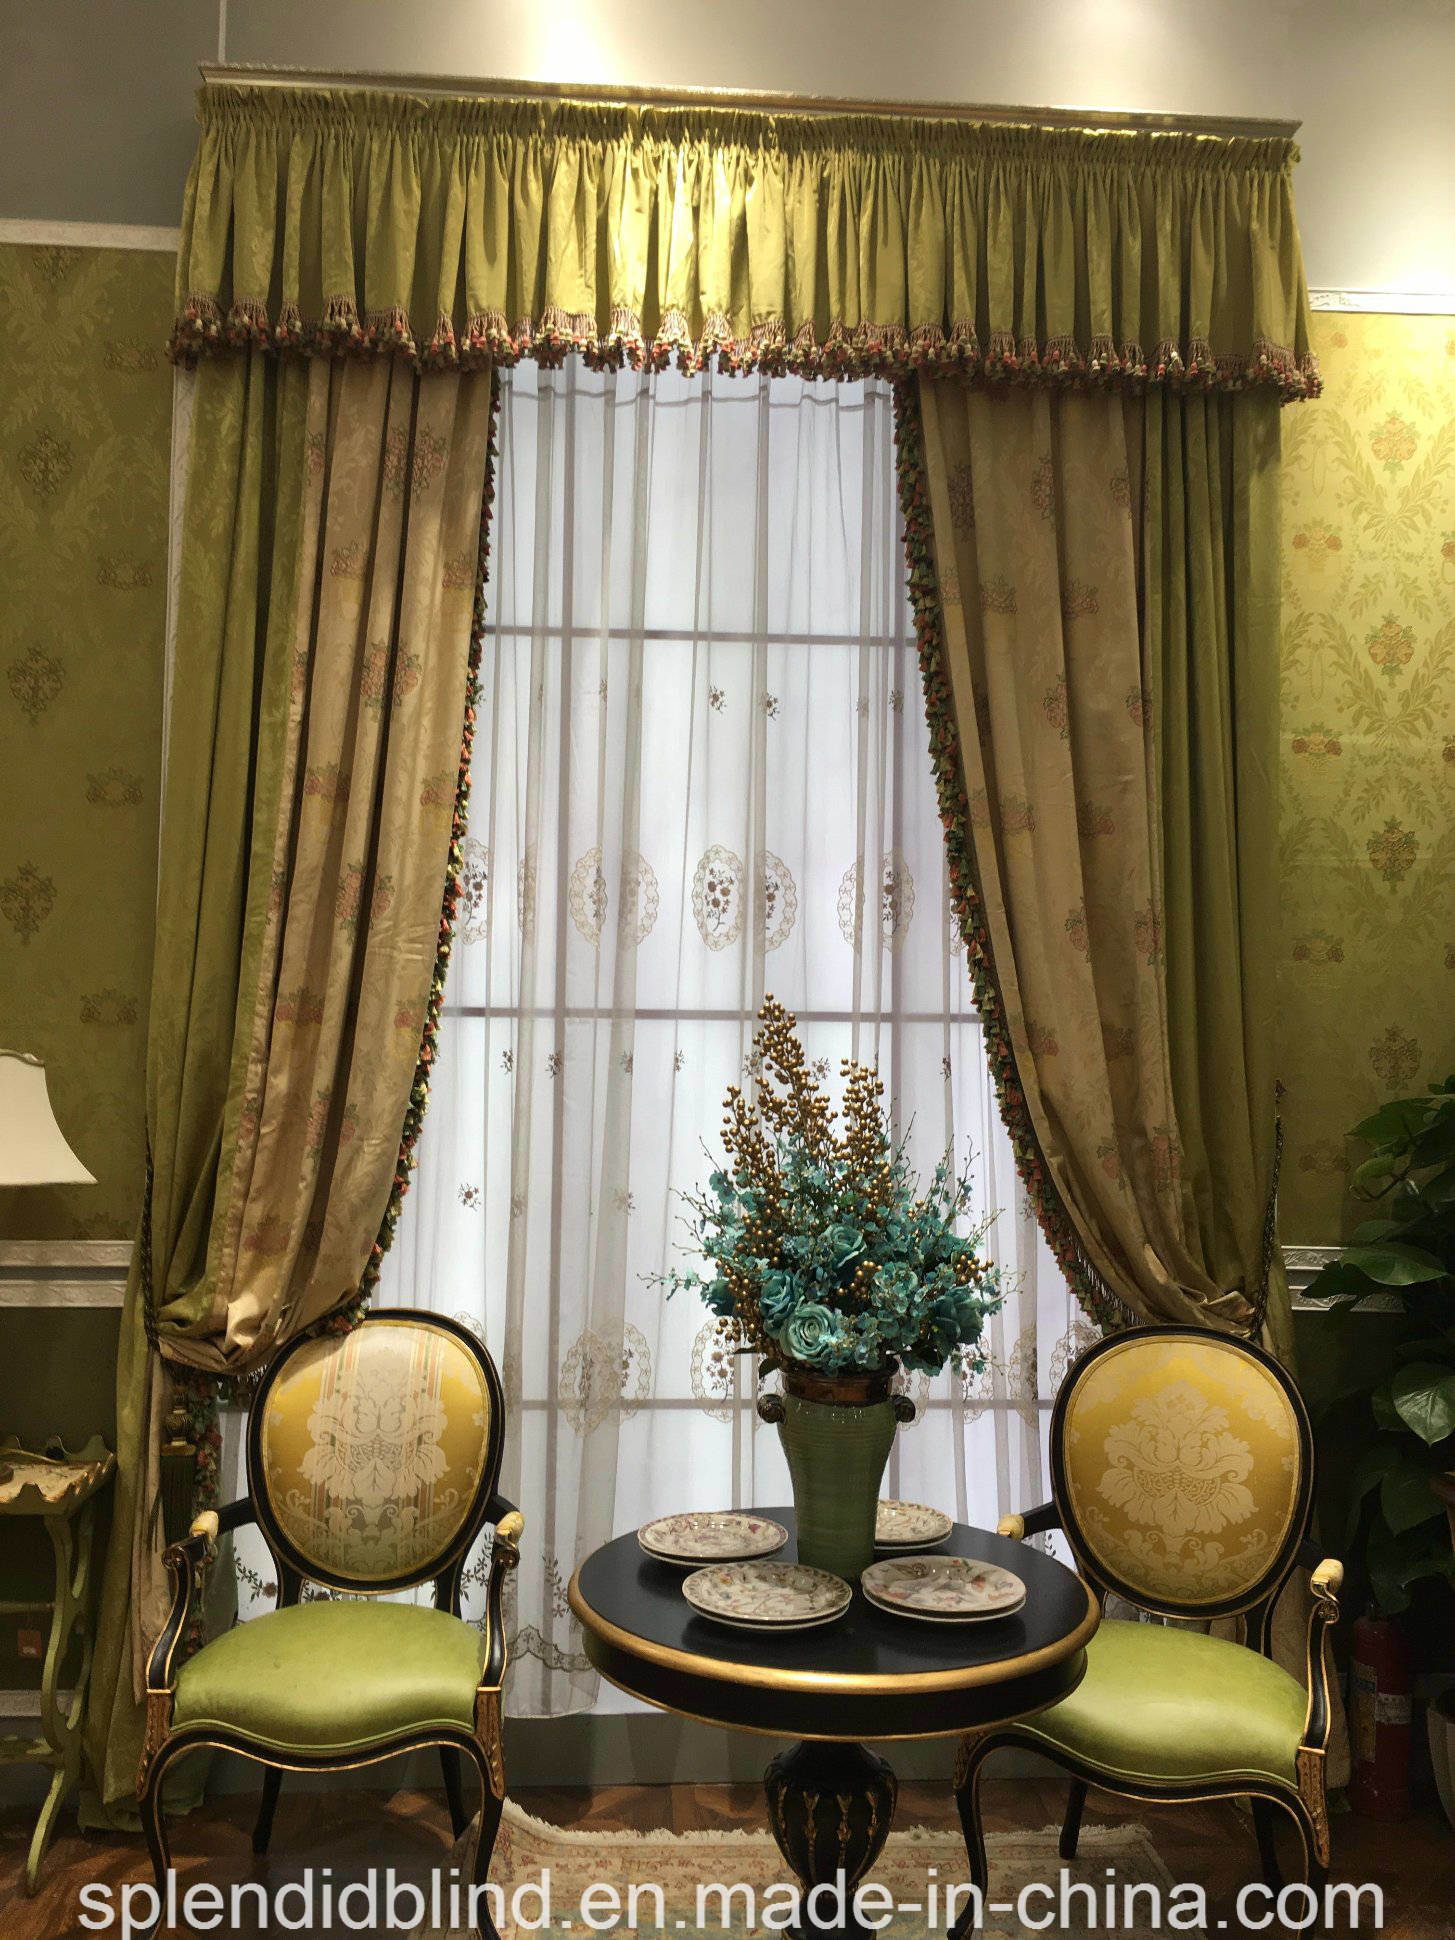 Home Use Windows Blinds Quality Design Windows Curtain Blinds